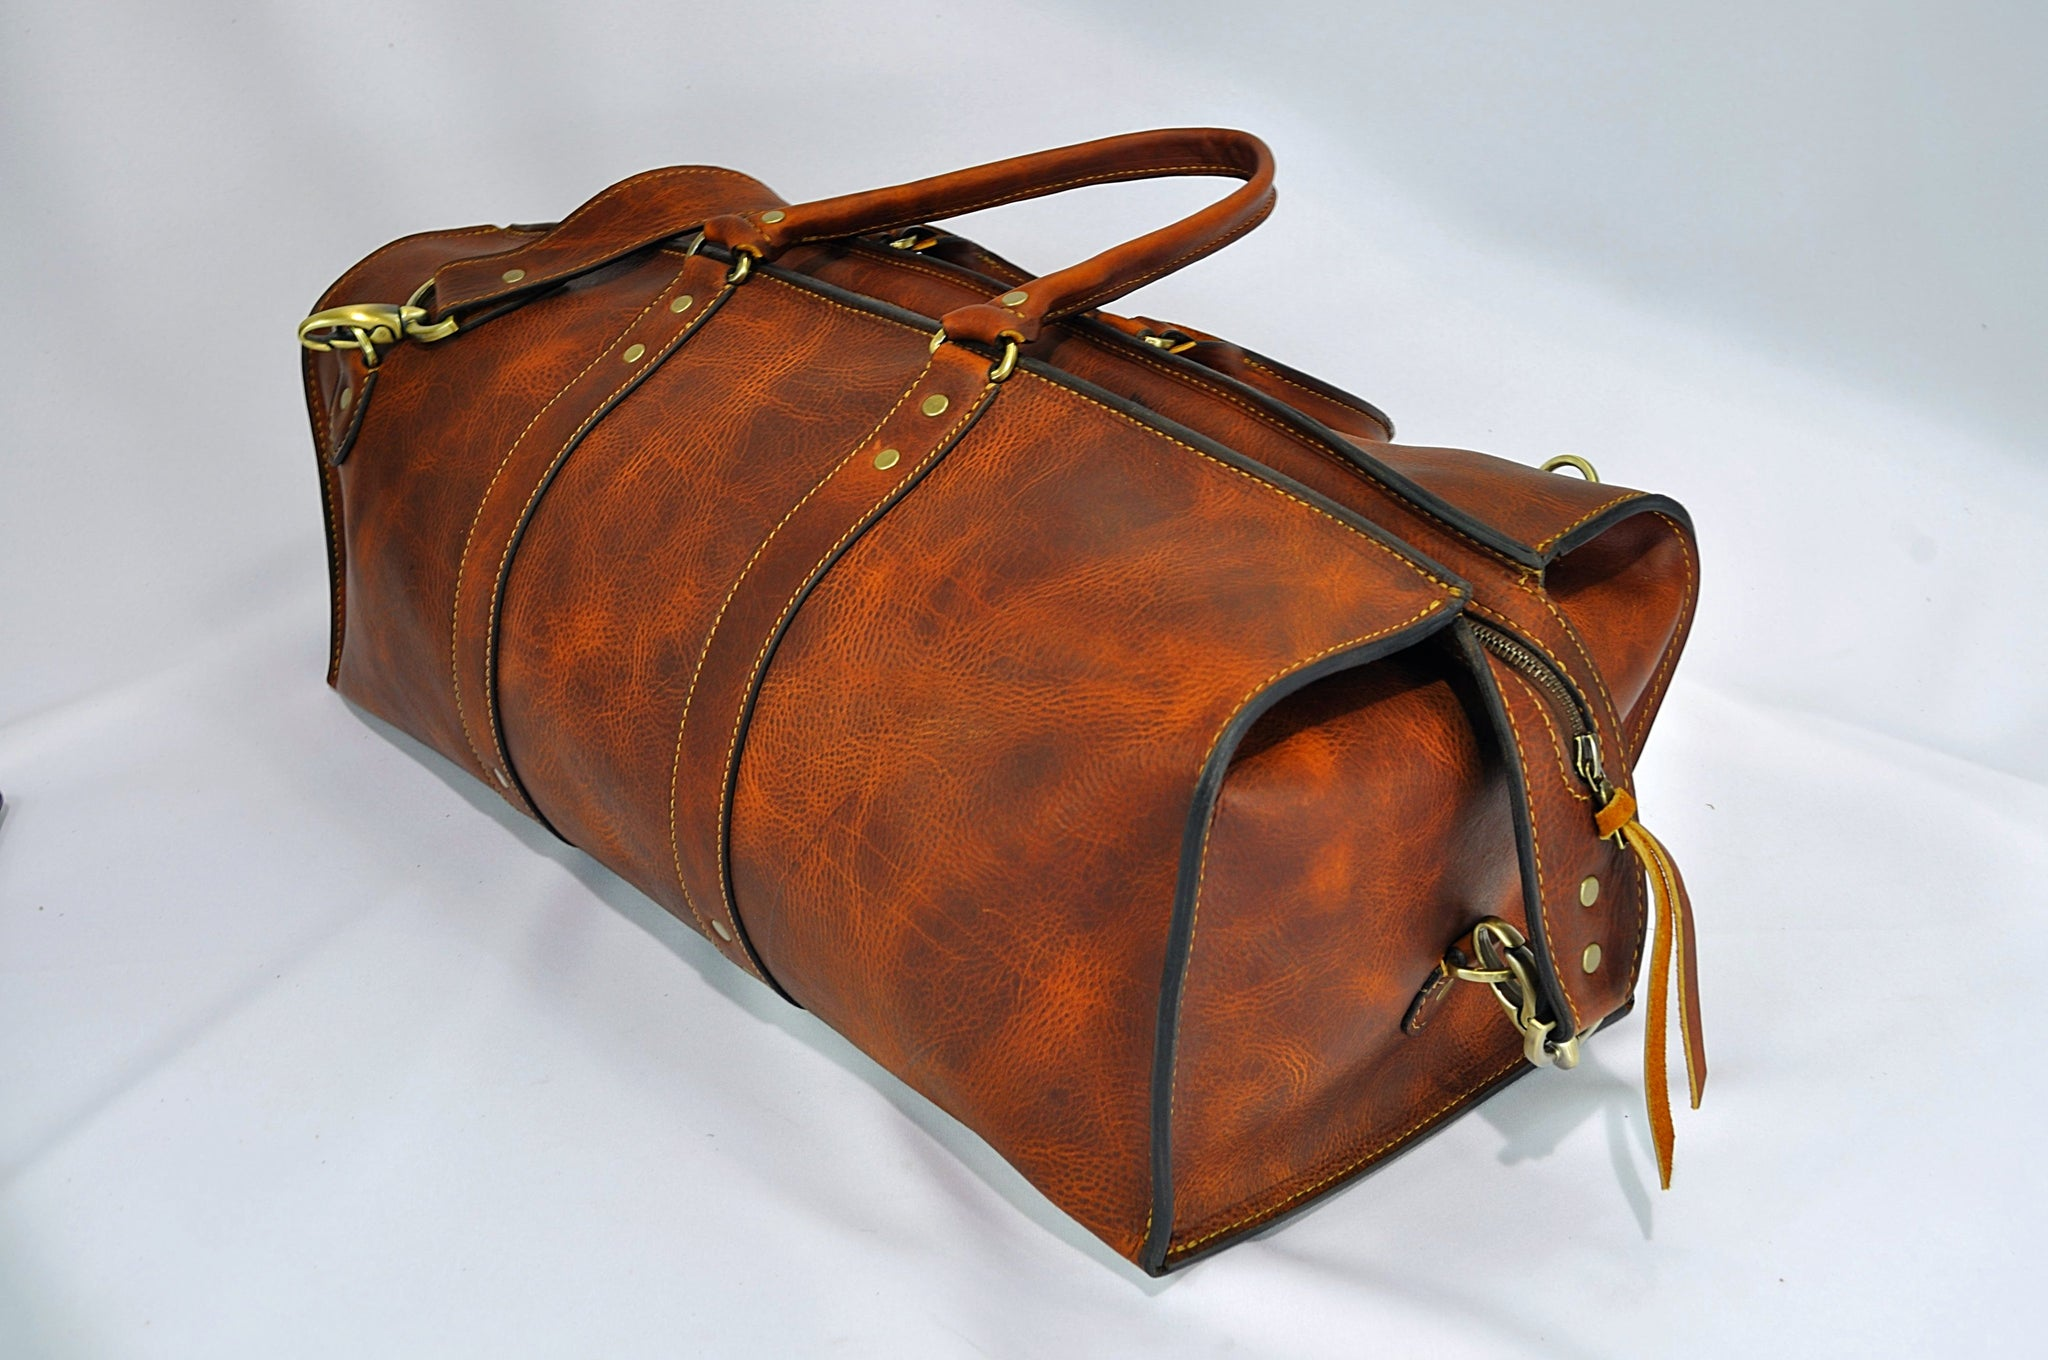 d254892bbc9d 1920 Overnight Duffel Bag (Tobacco Snakebite Leather) - The Speakeasy  Leather Co